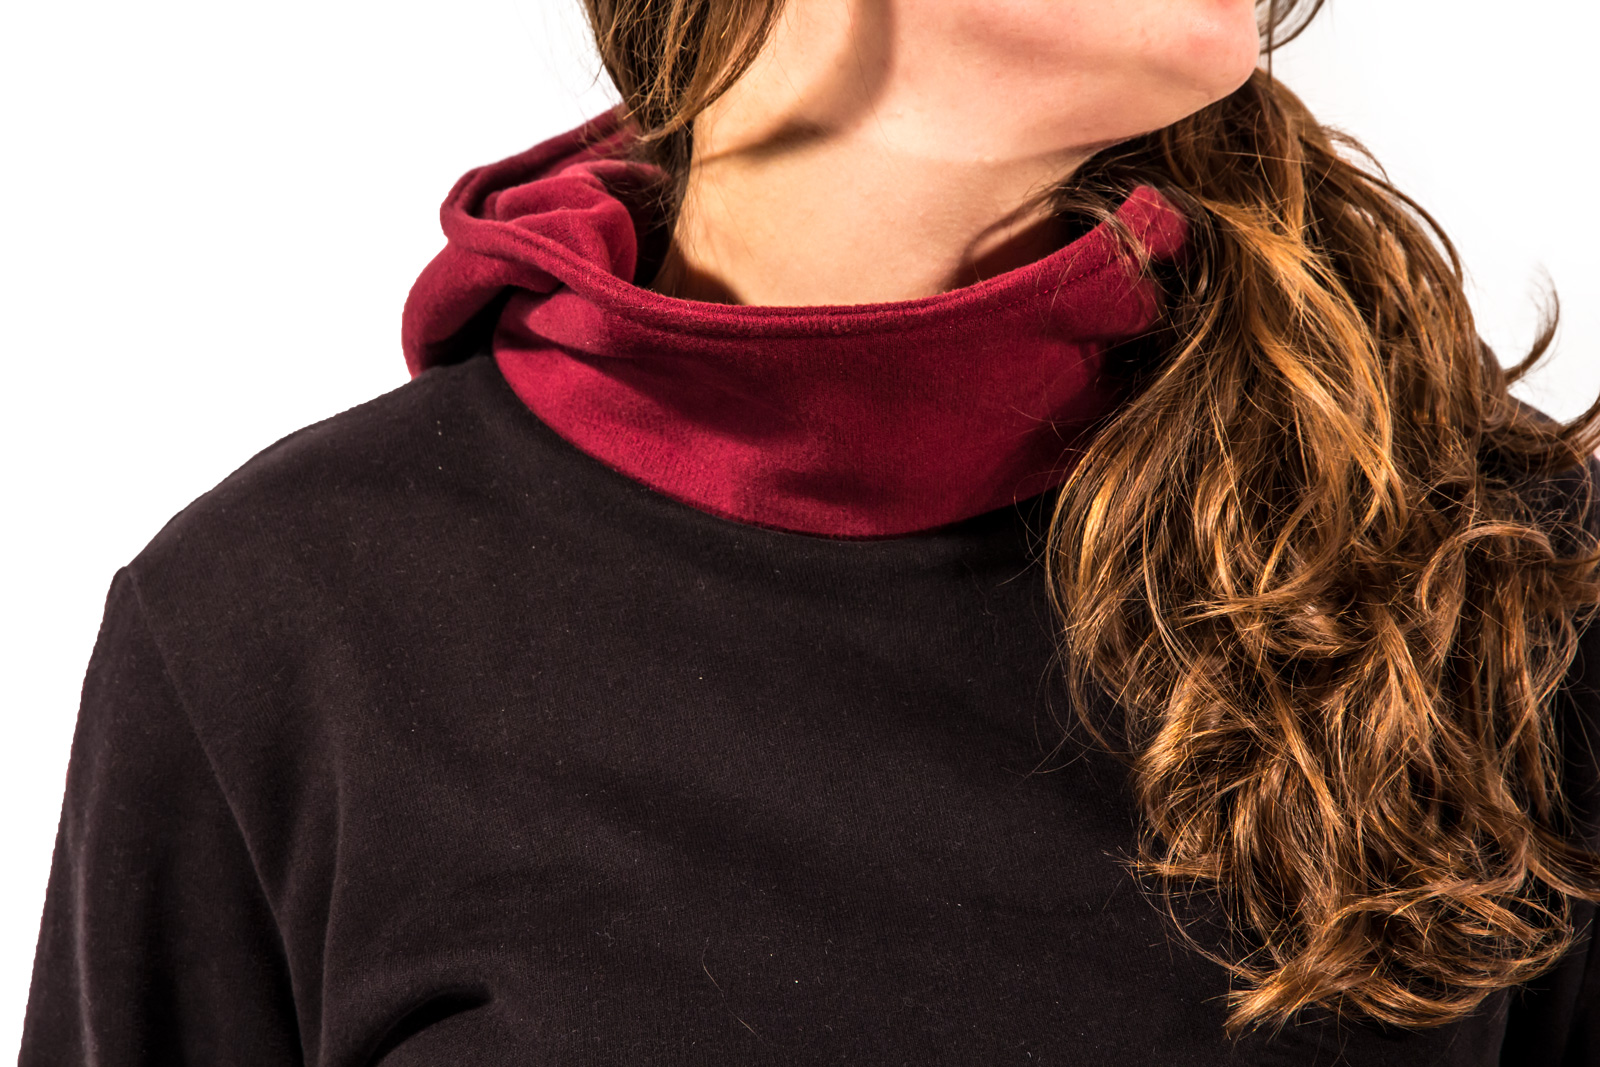 Bicolor handmade hoodie, 100% cotton, for skaters, surfers and snowboarders